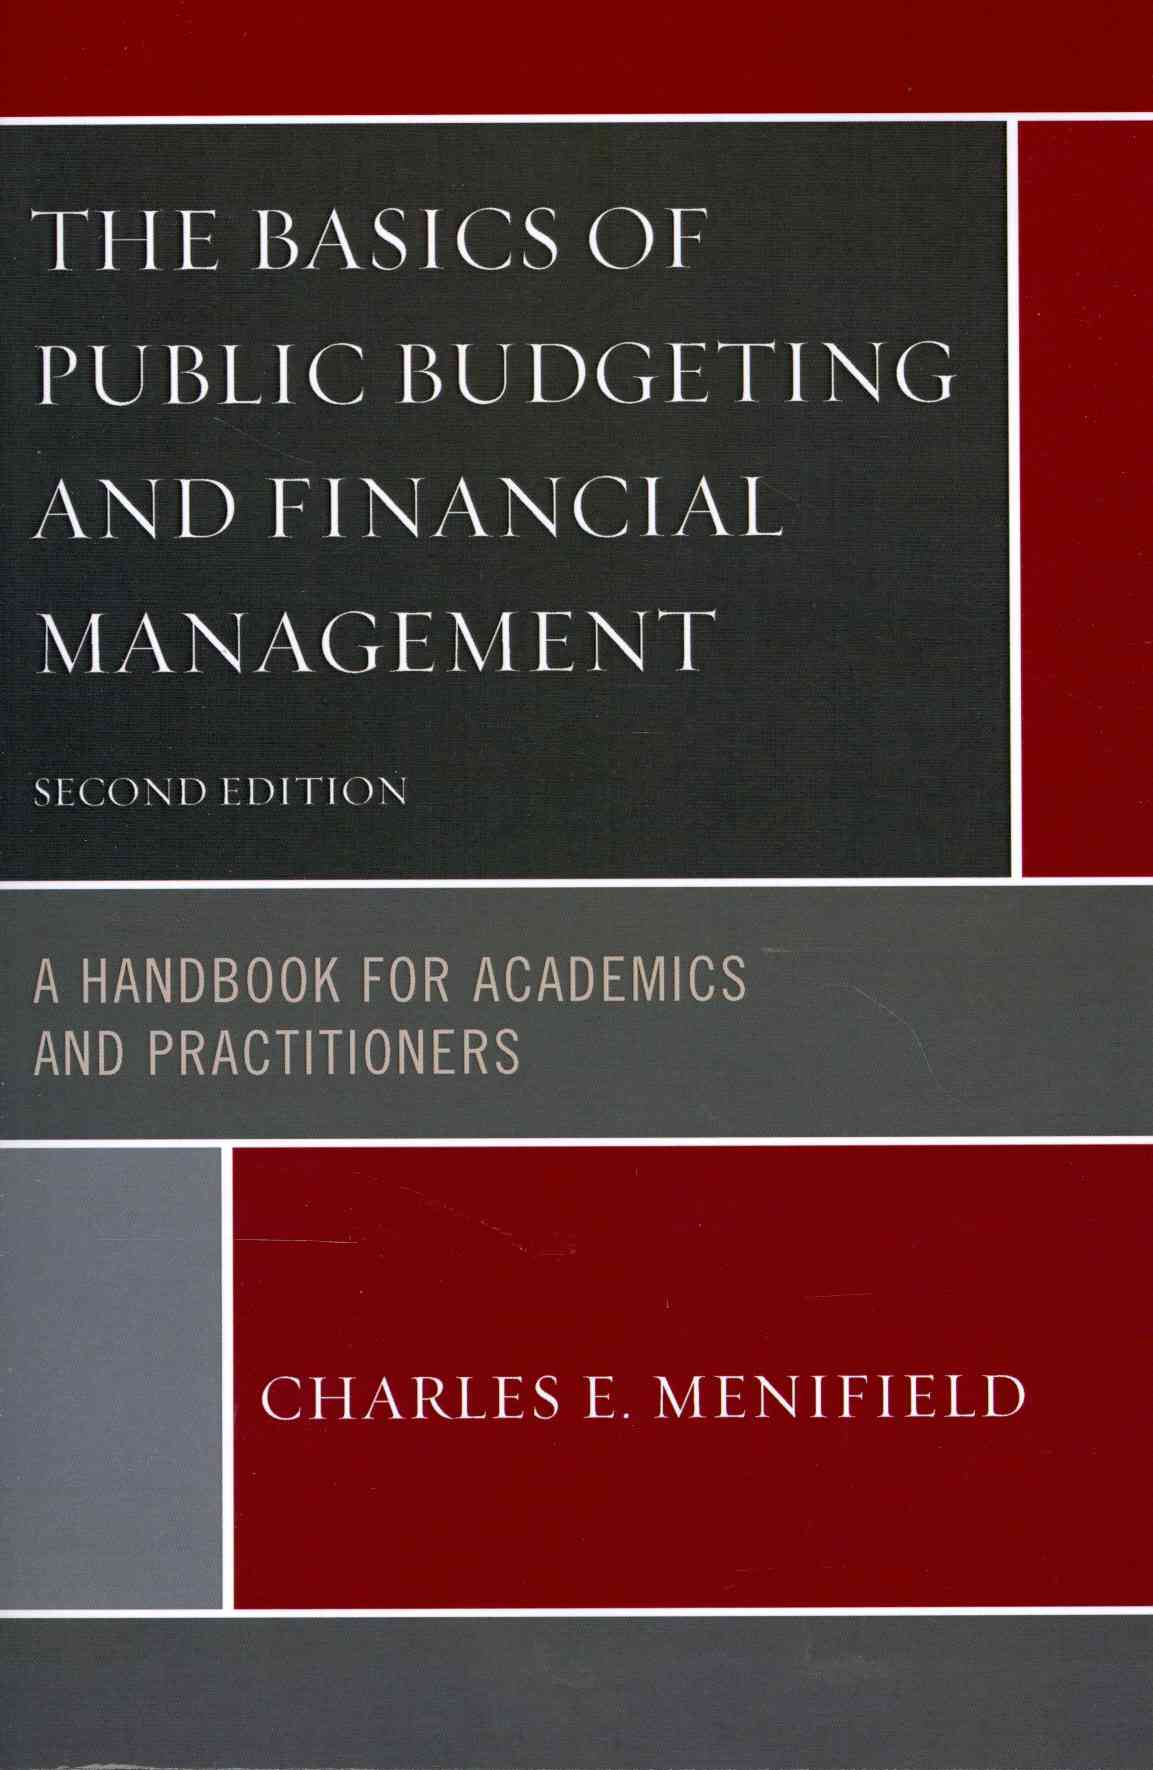 The Basics of Public Budgeting and Financial Management Updates By Menifield, Charles E.